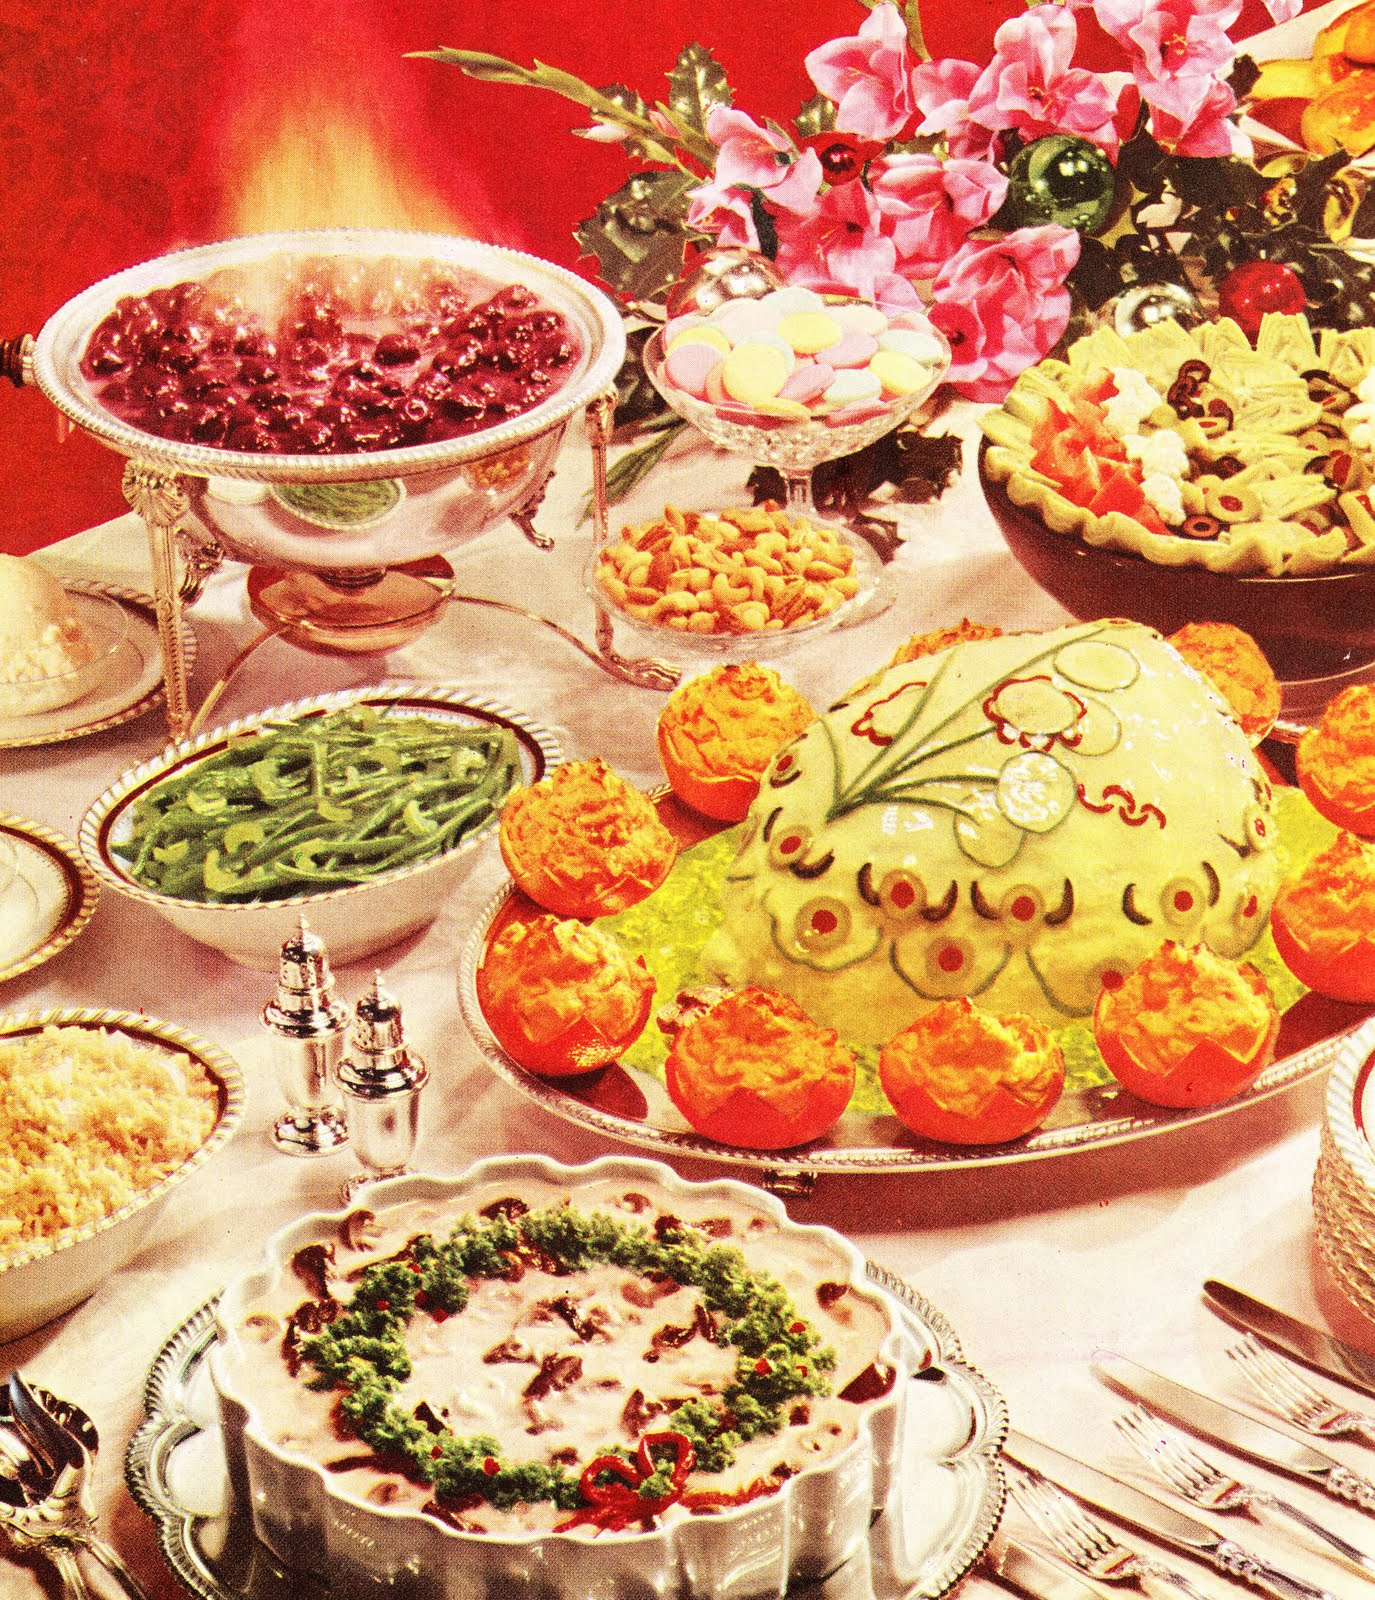 Buffet Cuisine 1950: The Retro/Vintage Scan Emporium: I Wouldn't Eat That Of